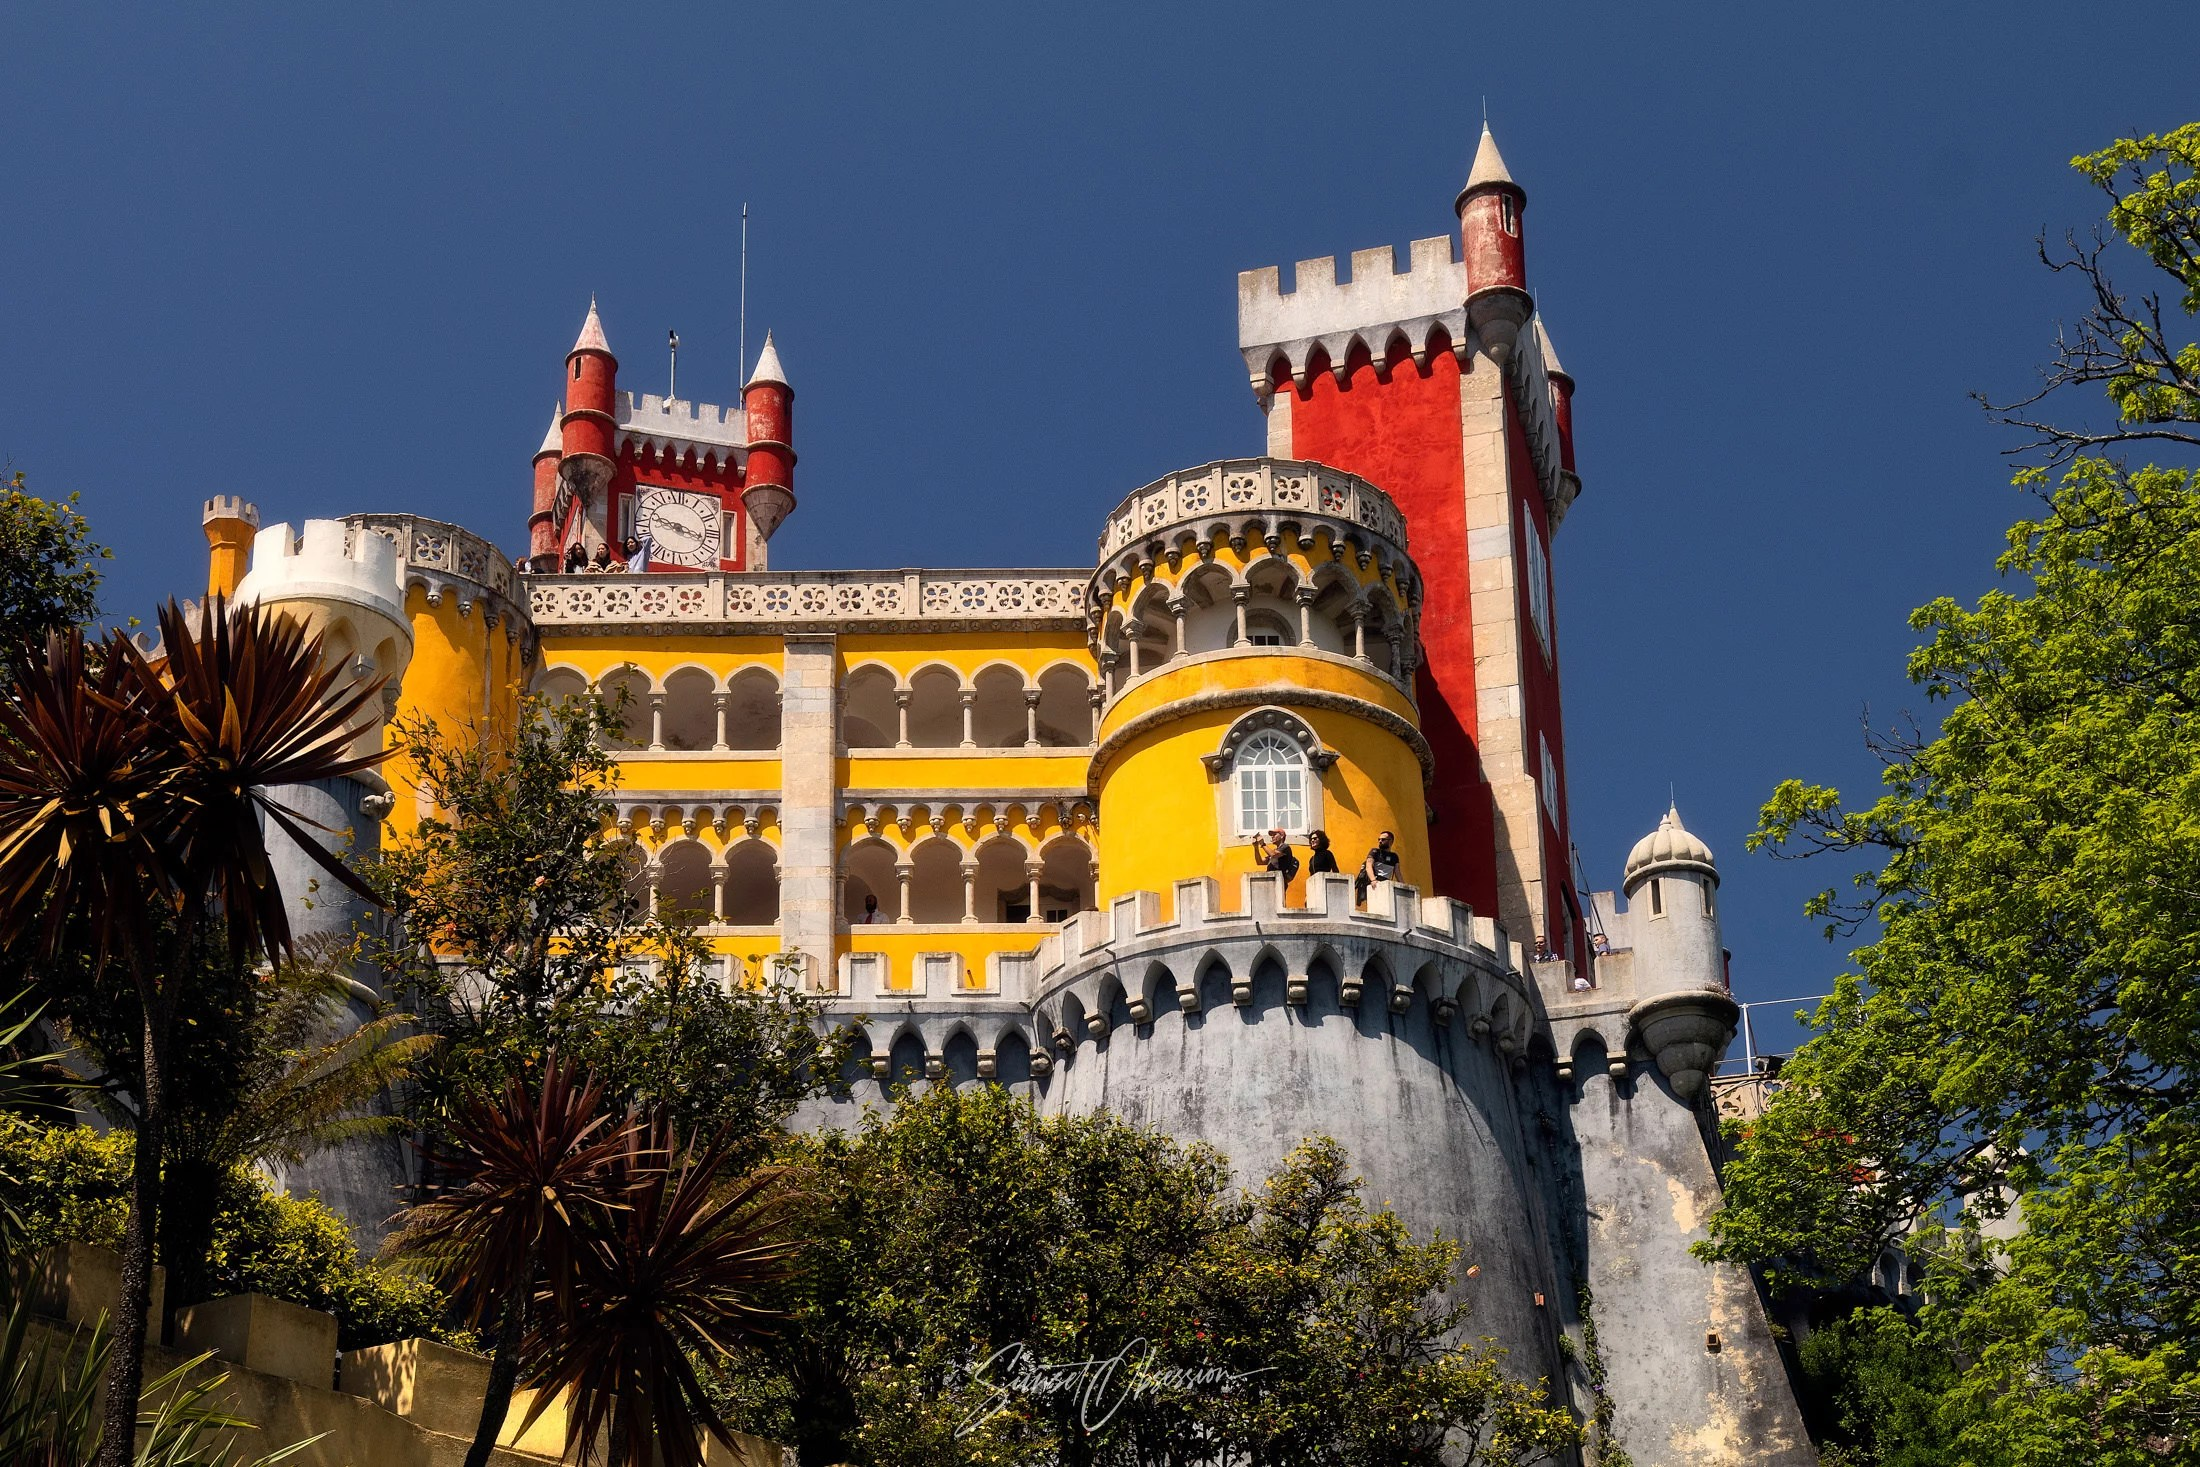 Pena Palace and its galleries from up close, Sintra, Portugal